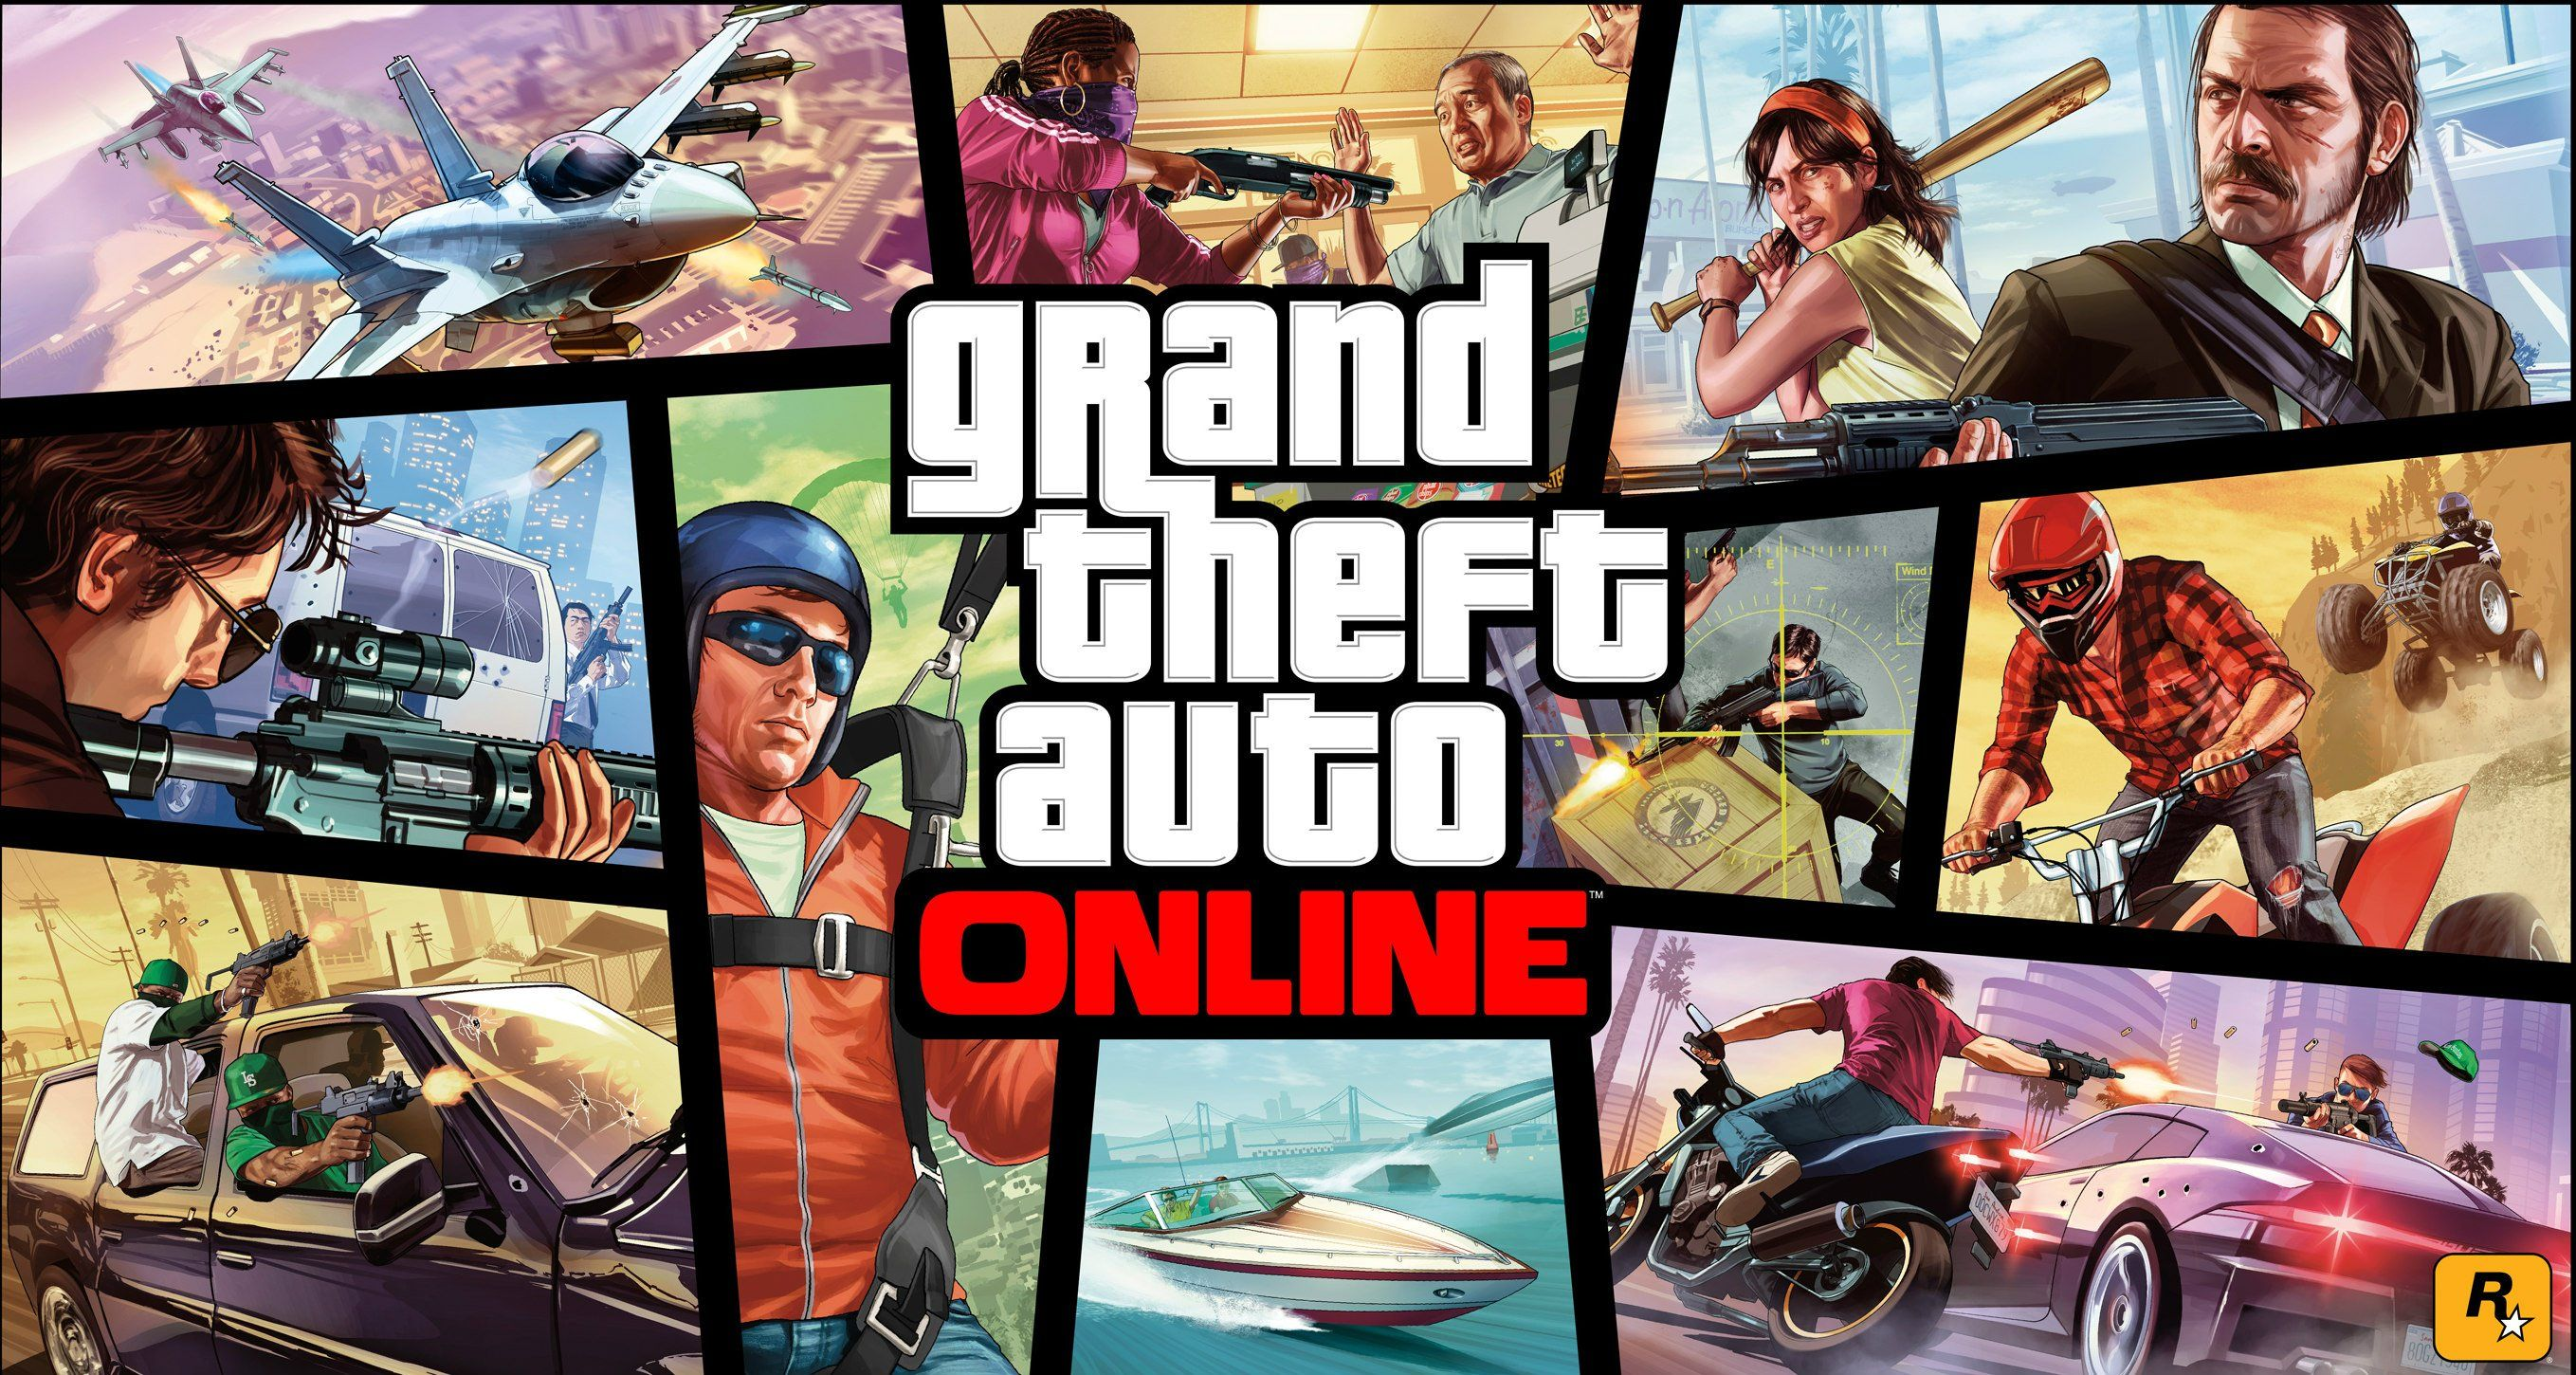 Rockstar Games has announced all the new content deals and special events happening in Grand Theft Auto 5 line this week The centerpiece of the update